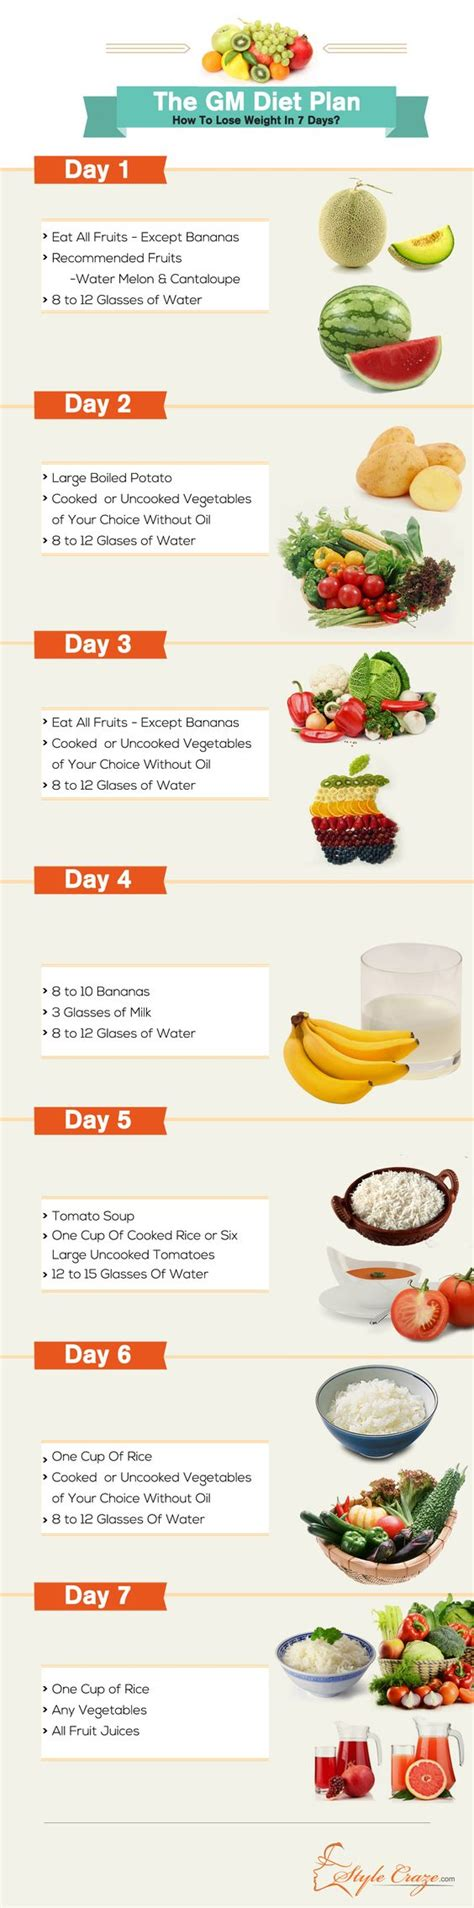 1 Week Detox Plan by The Gm Diet Plan How To Lose Weight In Just 7 Days